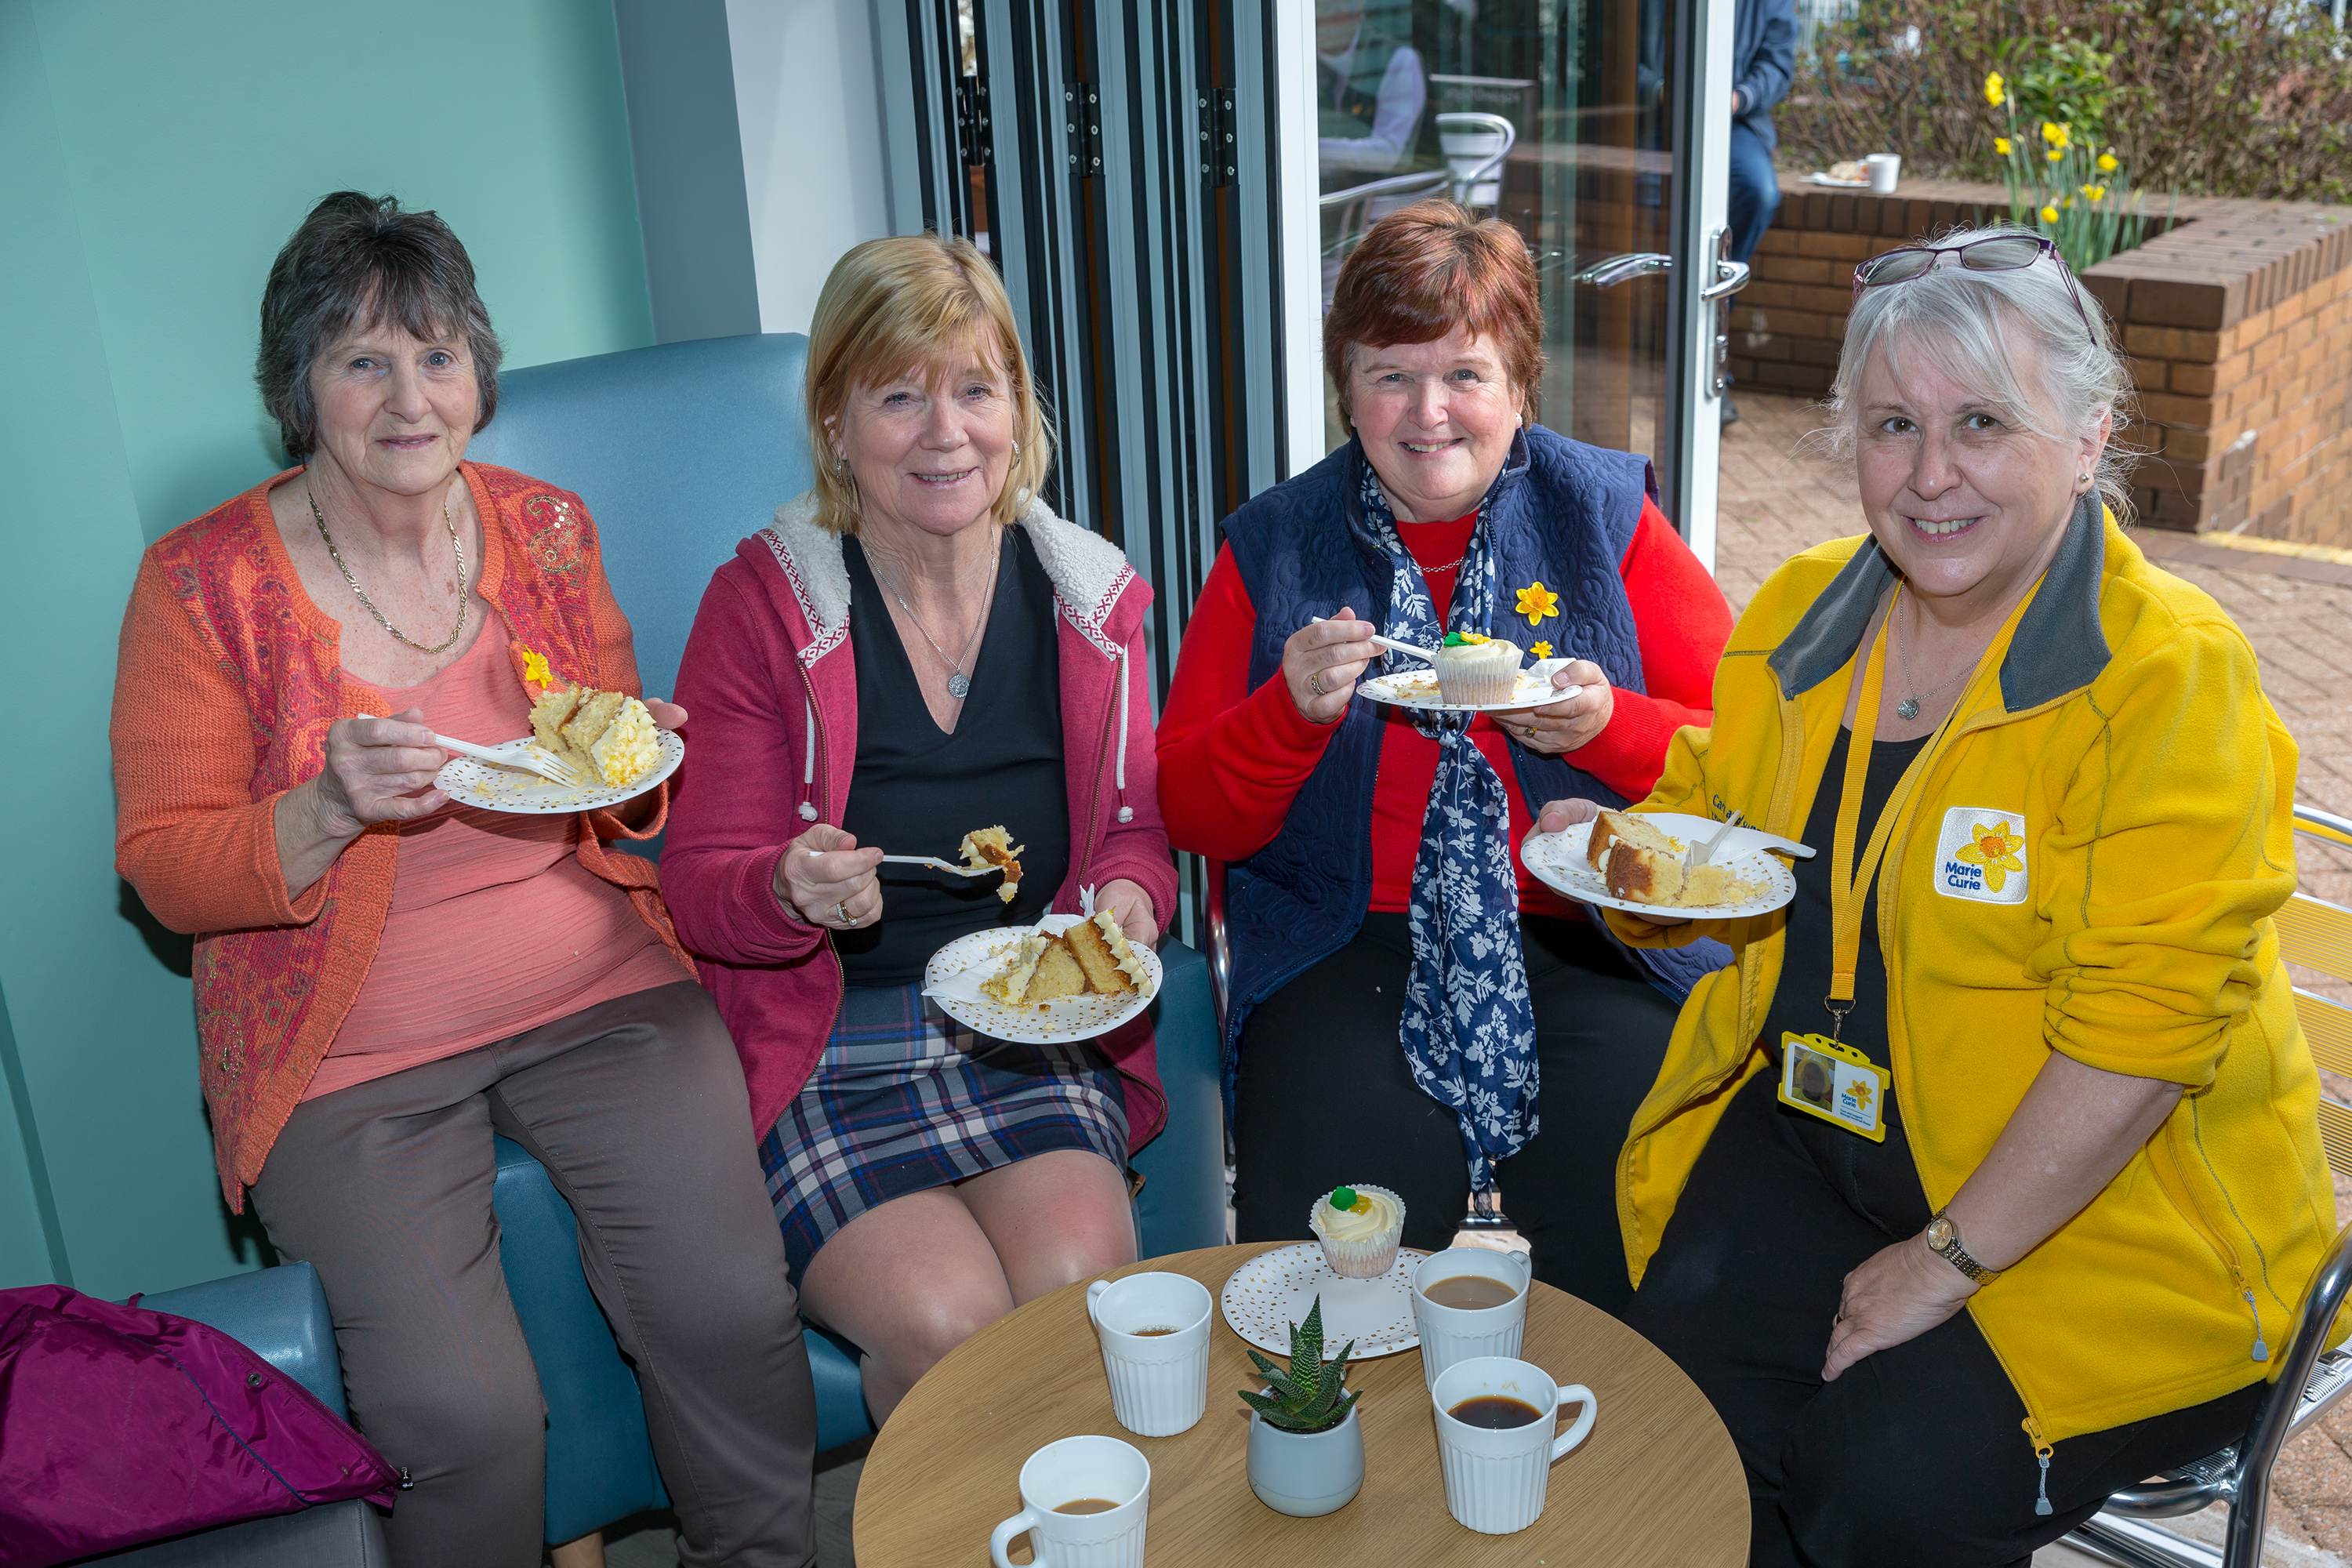 Members of the Caerphilly fundraising group enjoying some tea and cake at the new Marie Curie Cafe